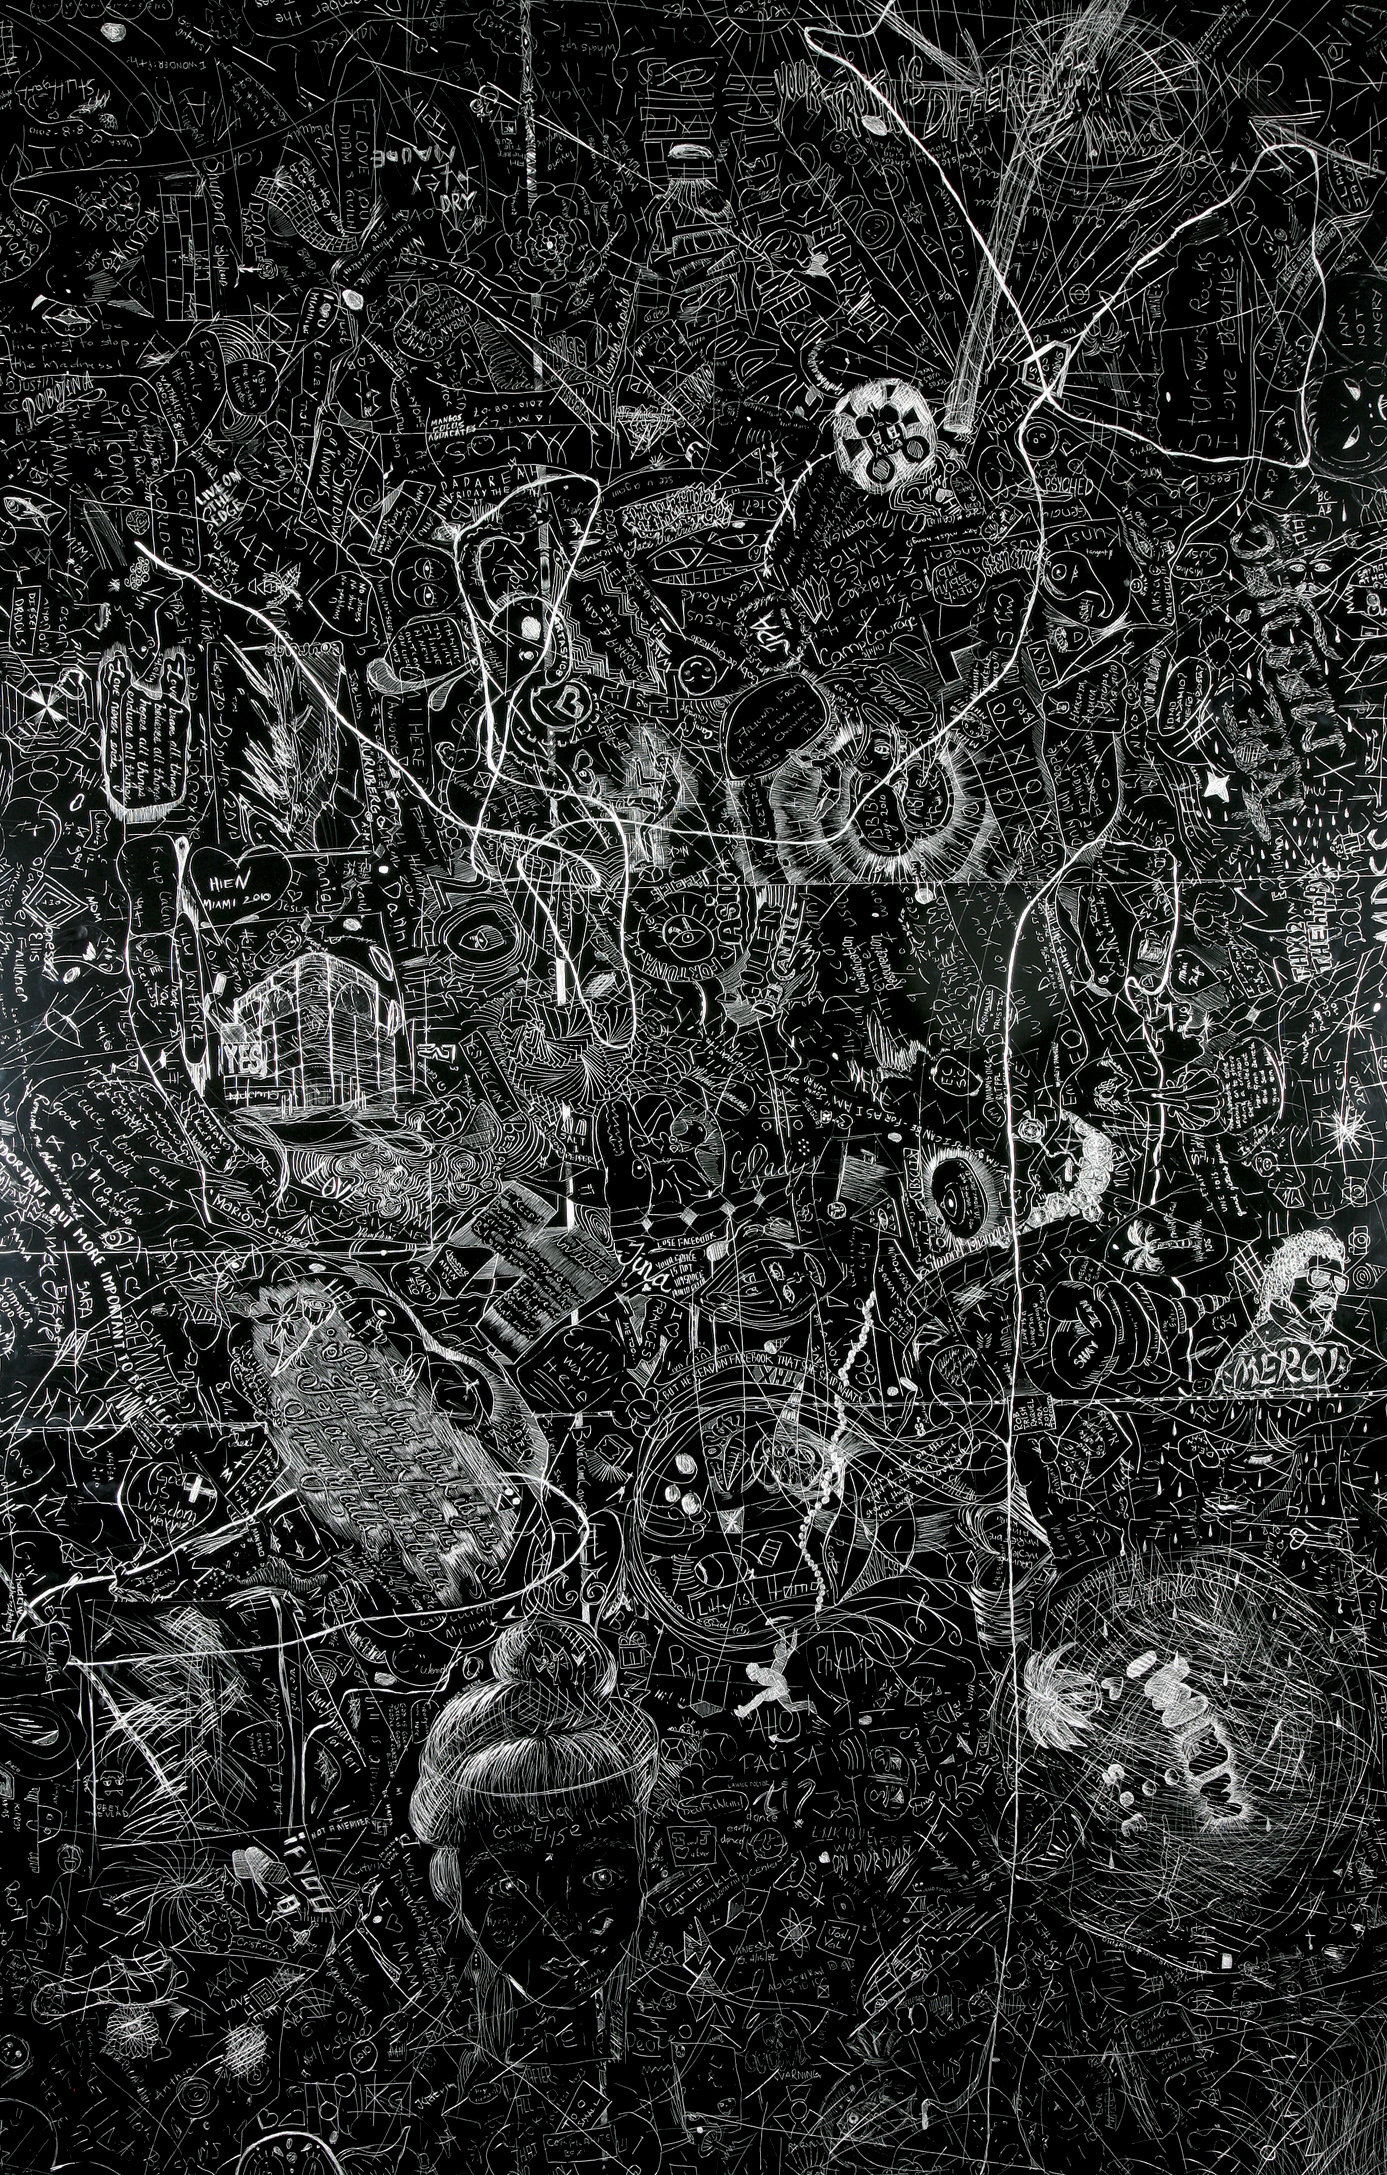 Miami Art Museum 2010, Crowd sourced collaborative drawing, Incised aluminum with baked enamel finish, 60 X 48 inches, 2010-11